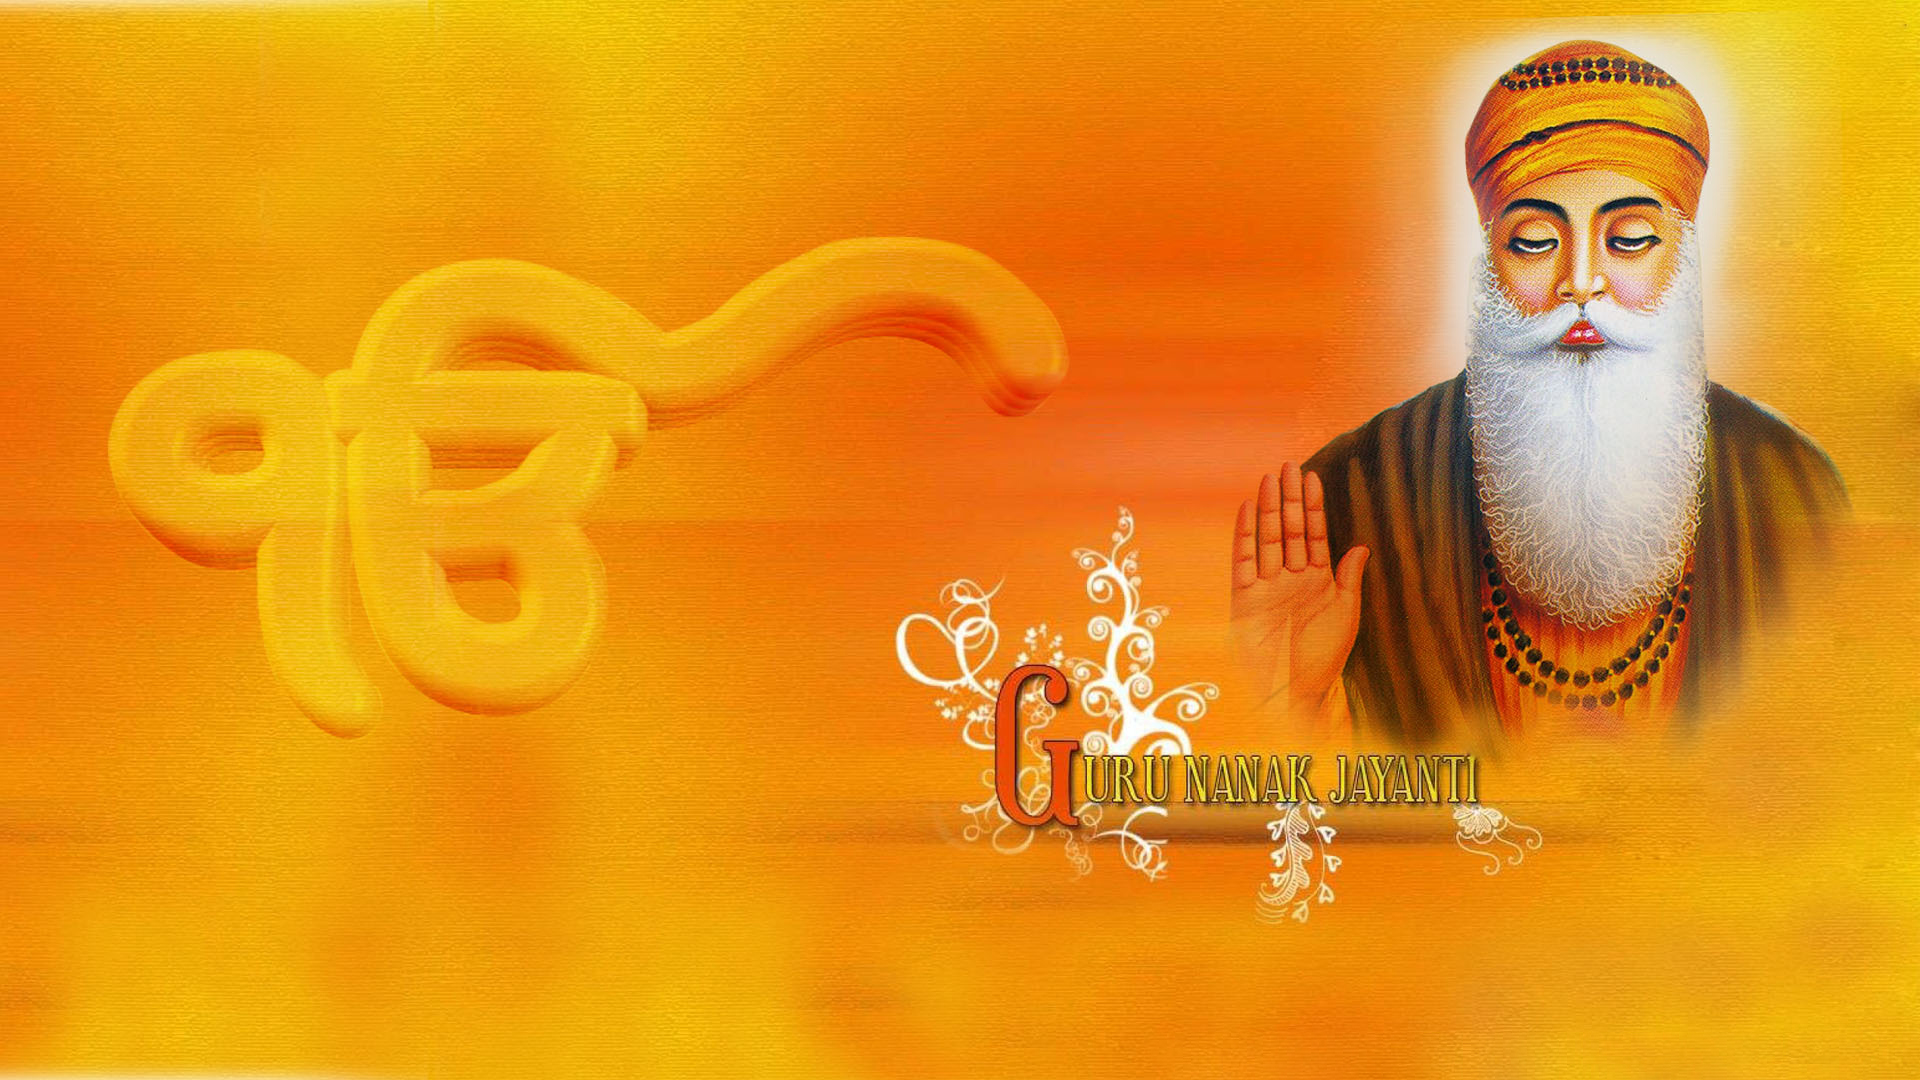 Guru Nanak Hd Wallpaper Free Download For Whatsaap